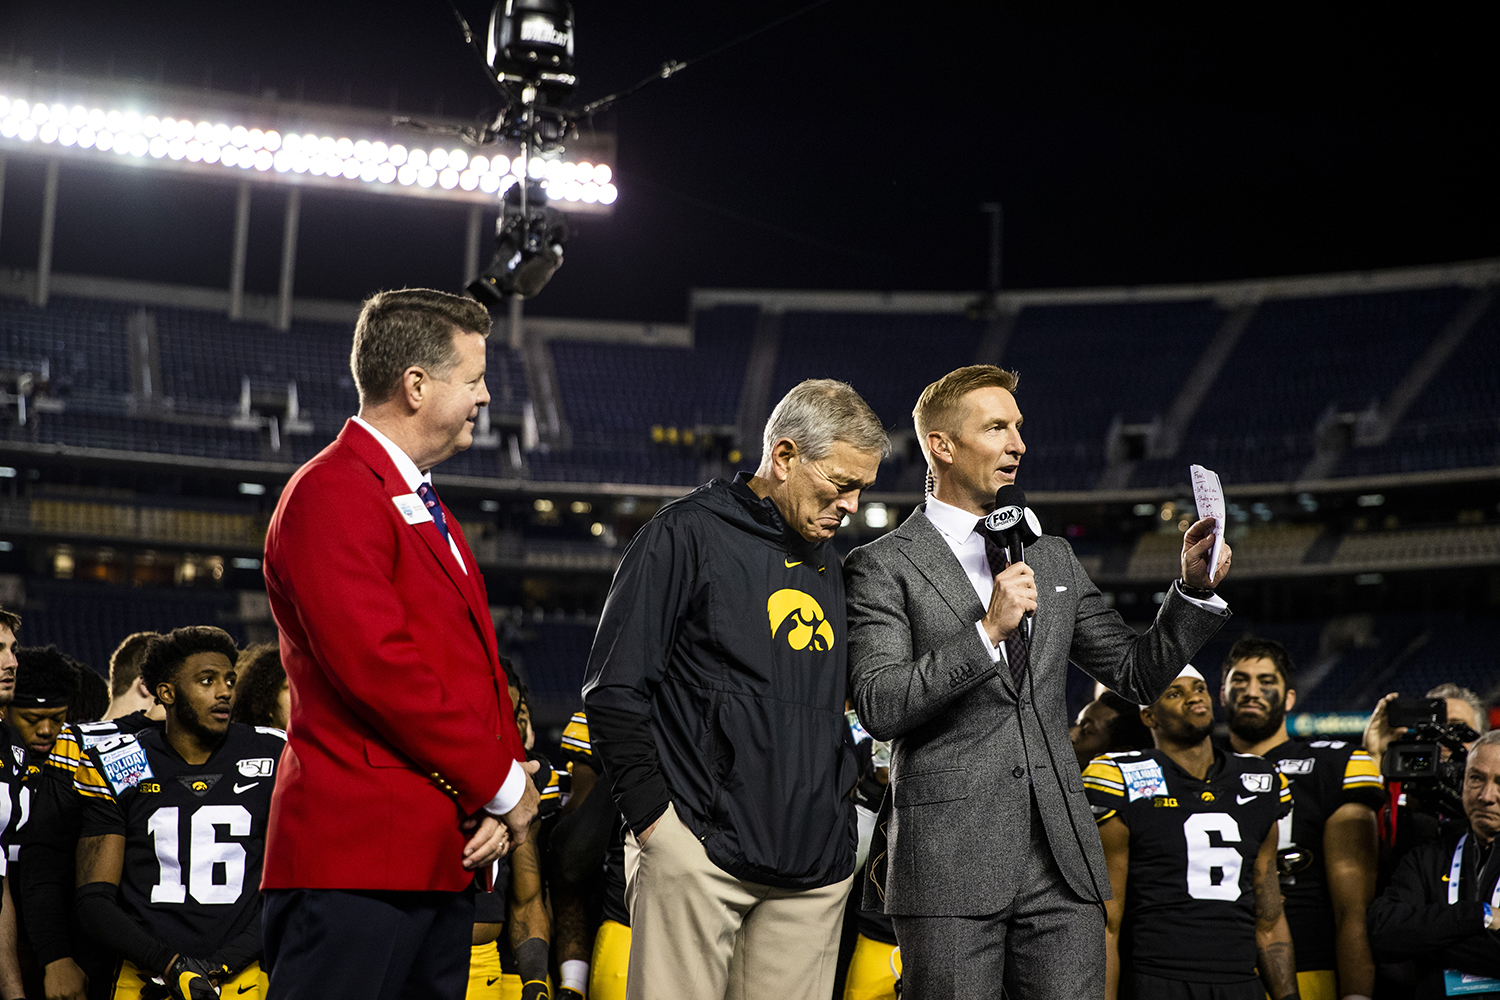 Iowa head coach Kirk Ferentz gets emotional as the announcer mentioned Hayden Fry during the Holiday Bowl game between Iowa and USC at SDCCU Stadium on Friday, Dec. 27, 2019. The Hawkeyes defeated the Trojans, 49-24.